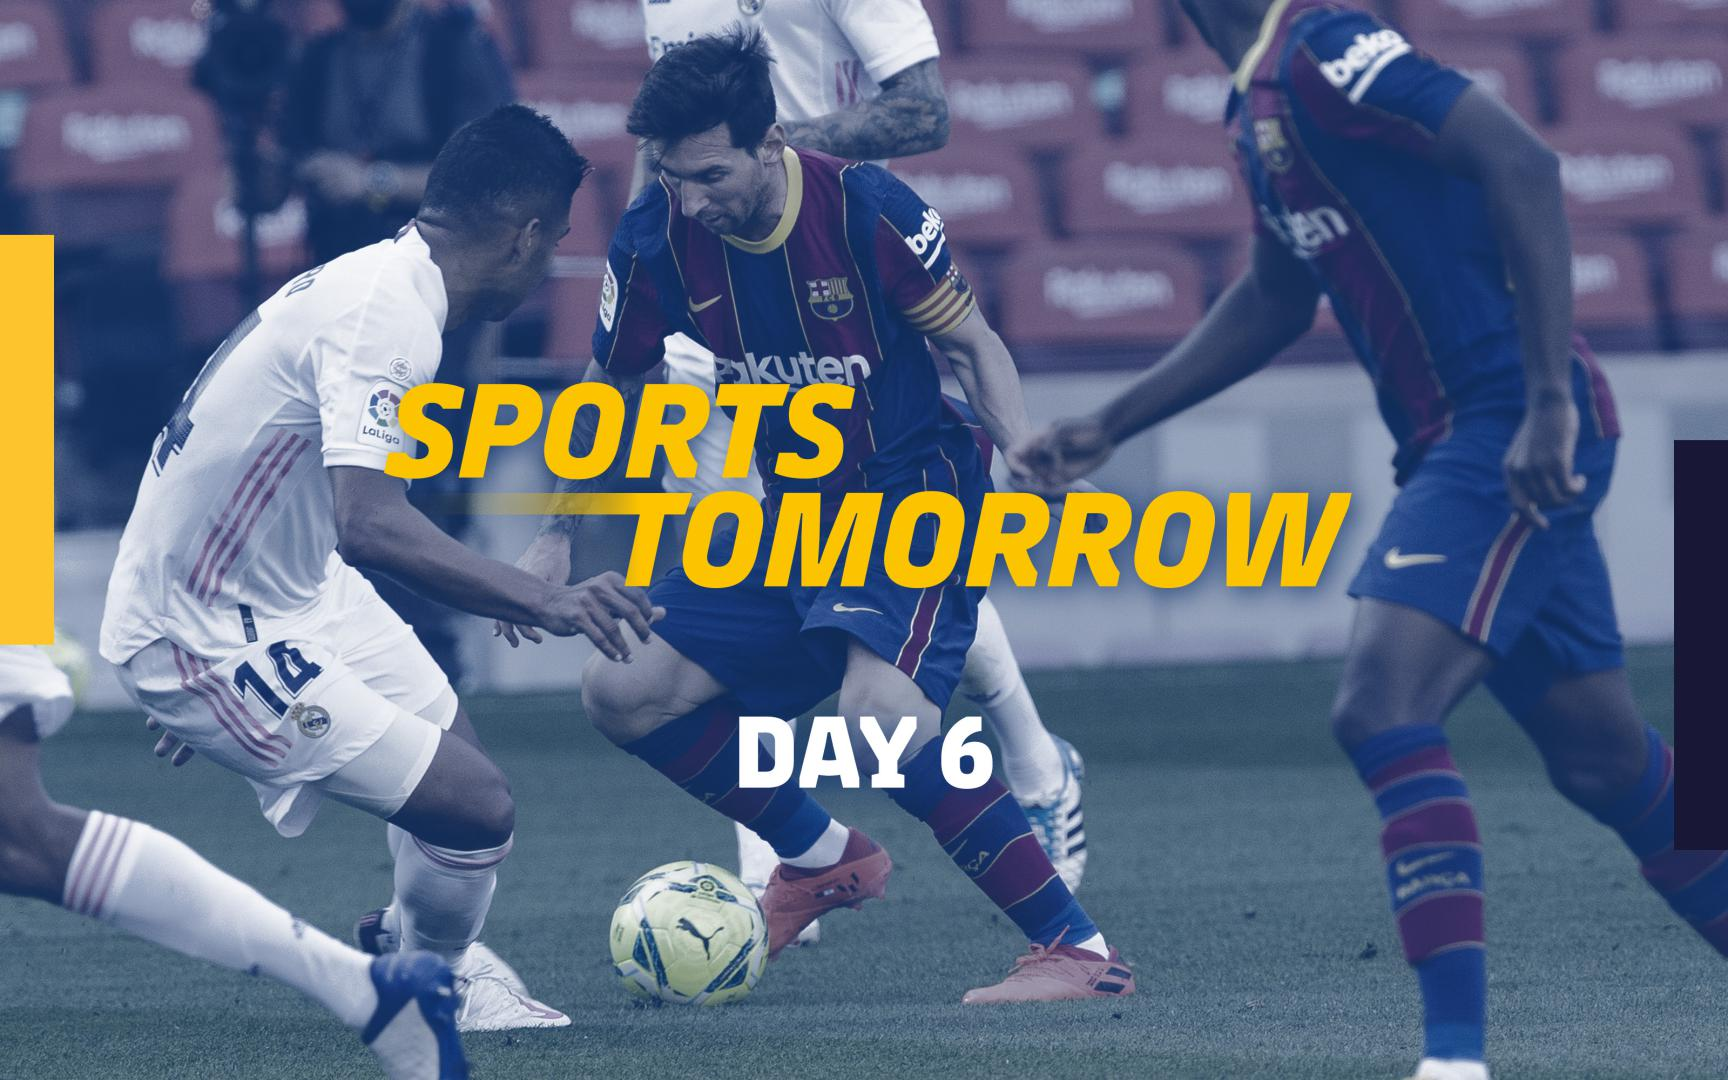 Sports Tomorrow Day 6